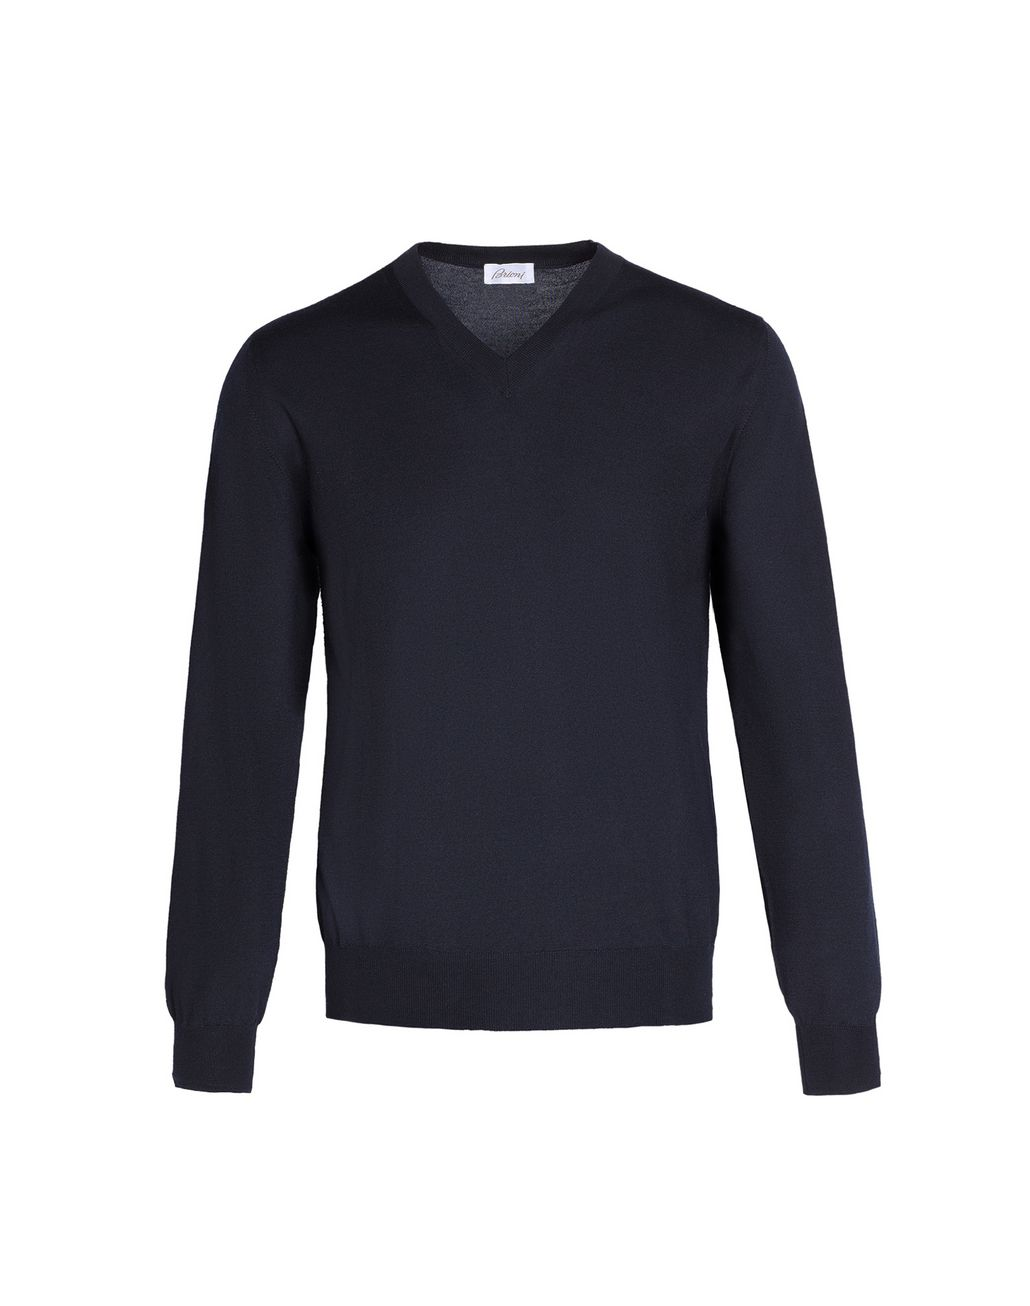 BRIONI Navy Blue V-Neck Sweater Knitwear Man f